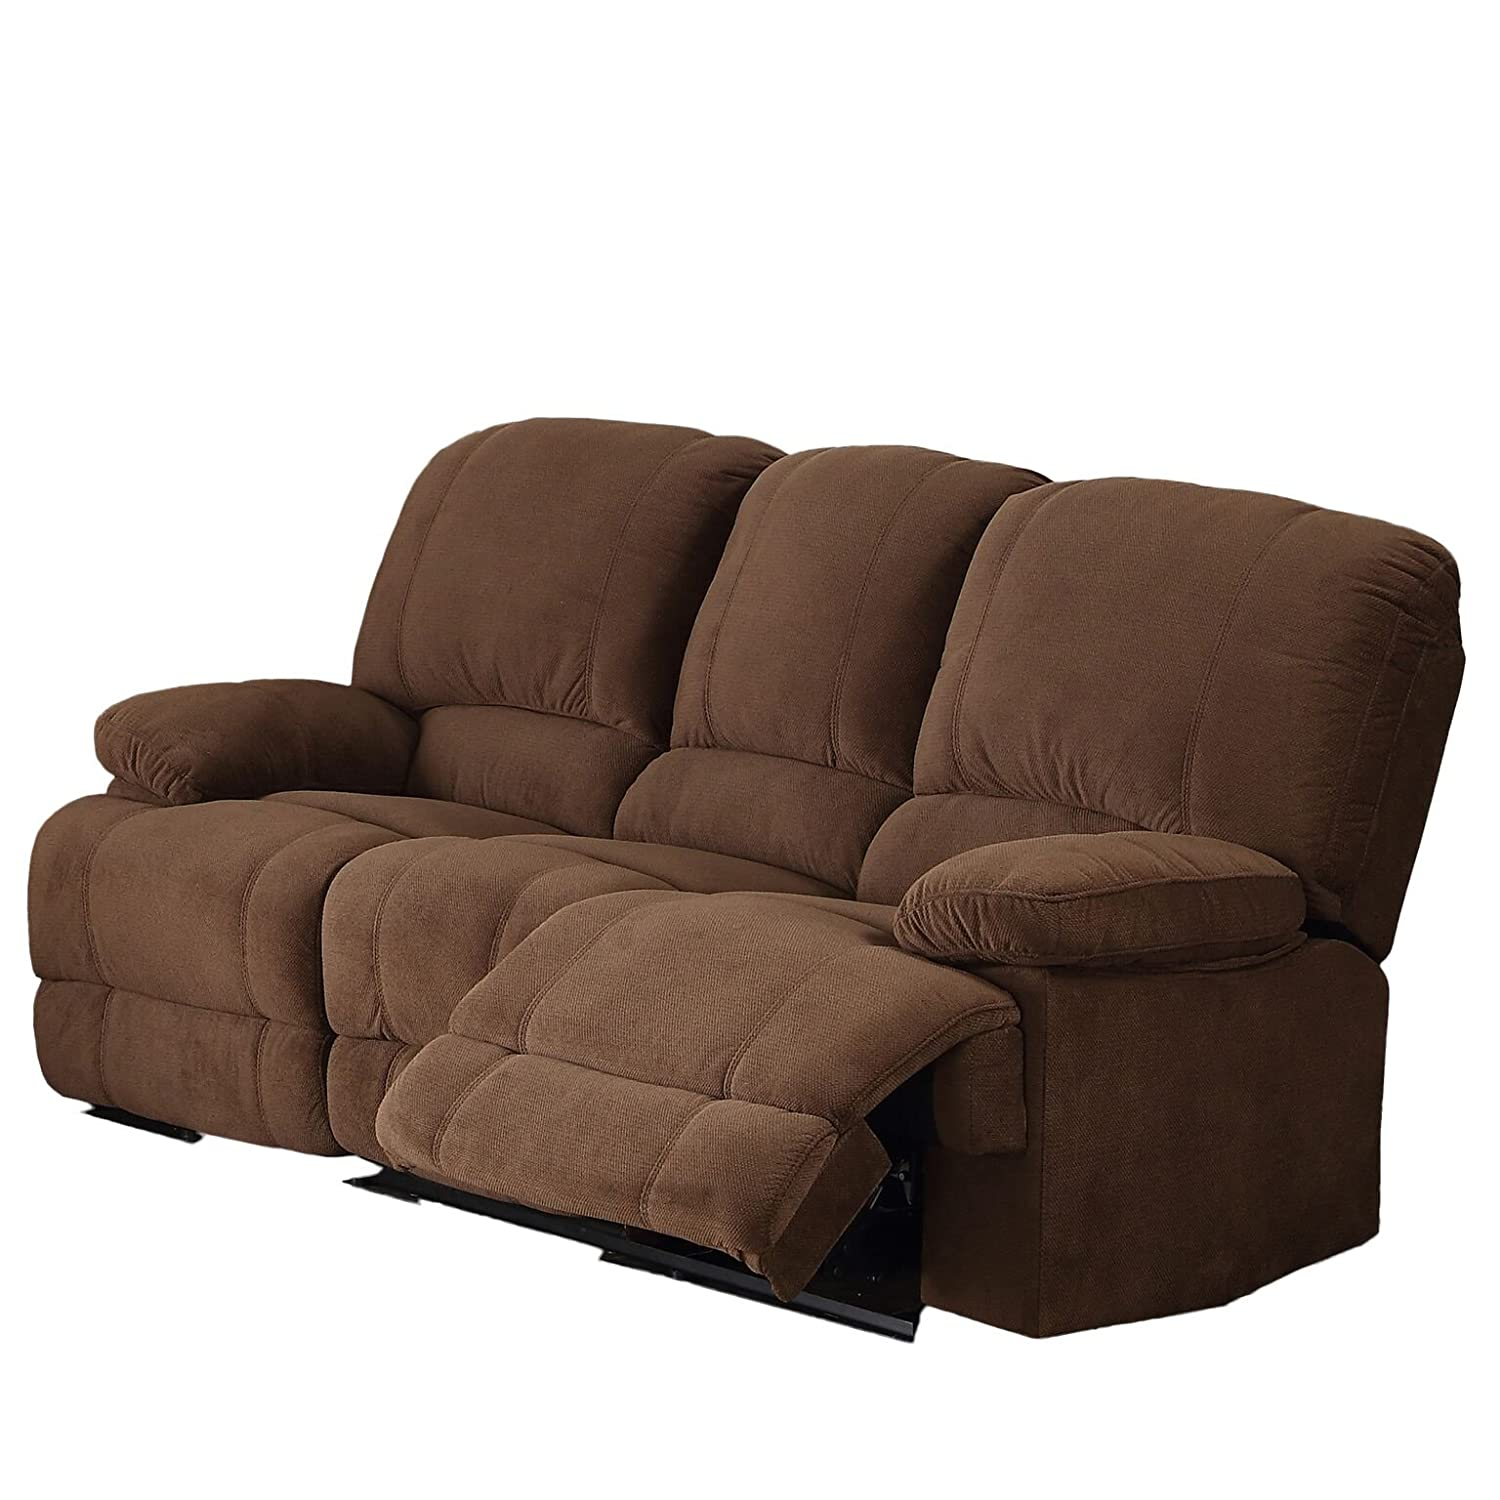 Amazon.com: AC Pacific Kevin Collection Contemporary Upholstered Reclining  Sofa With Dual Recliners, Brown: Kitchen U0026 Dining